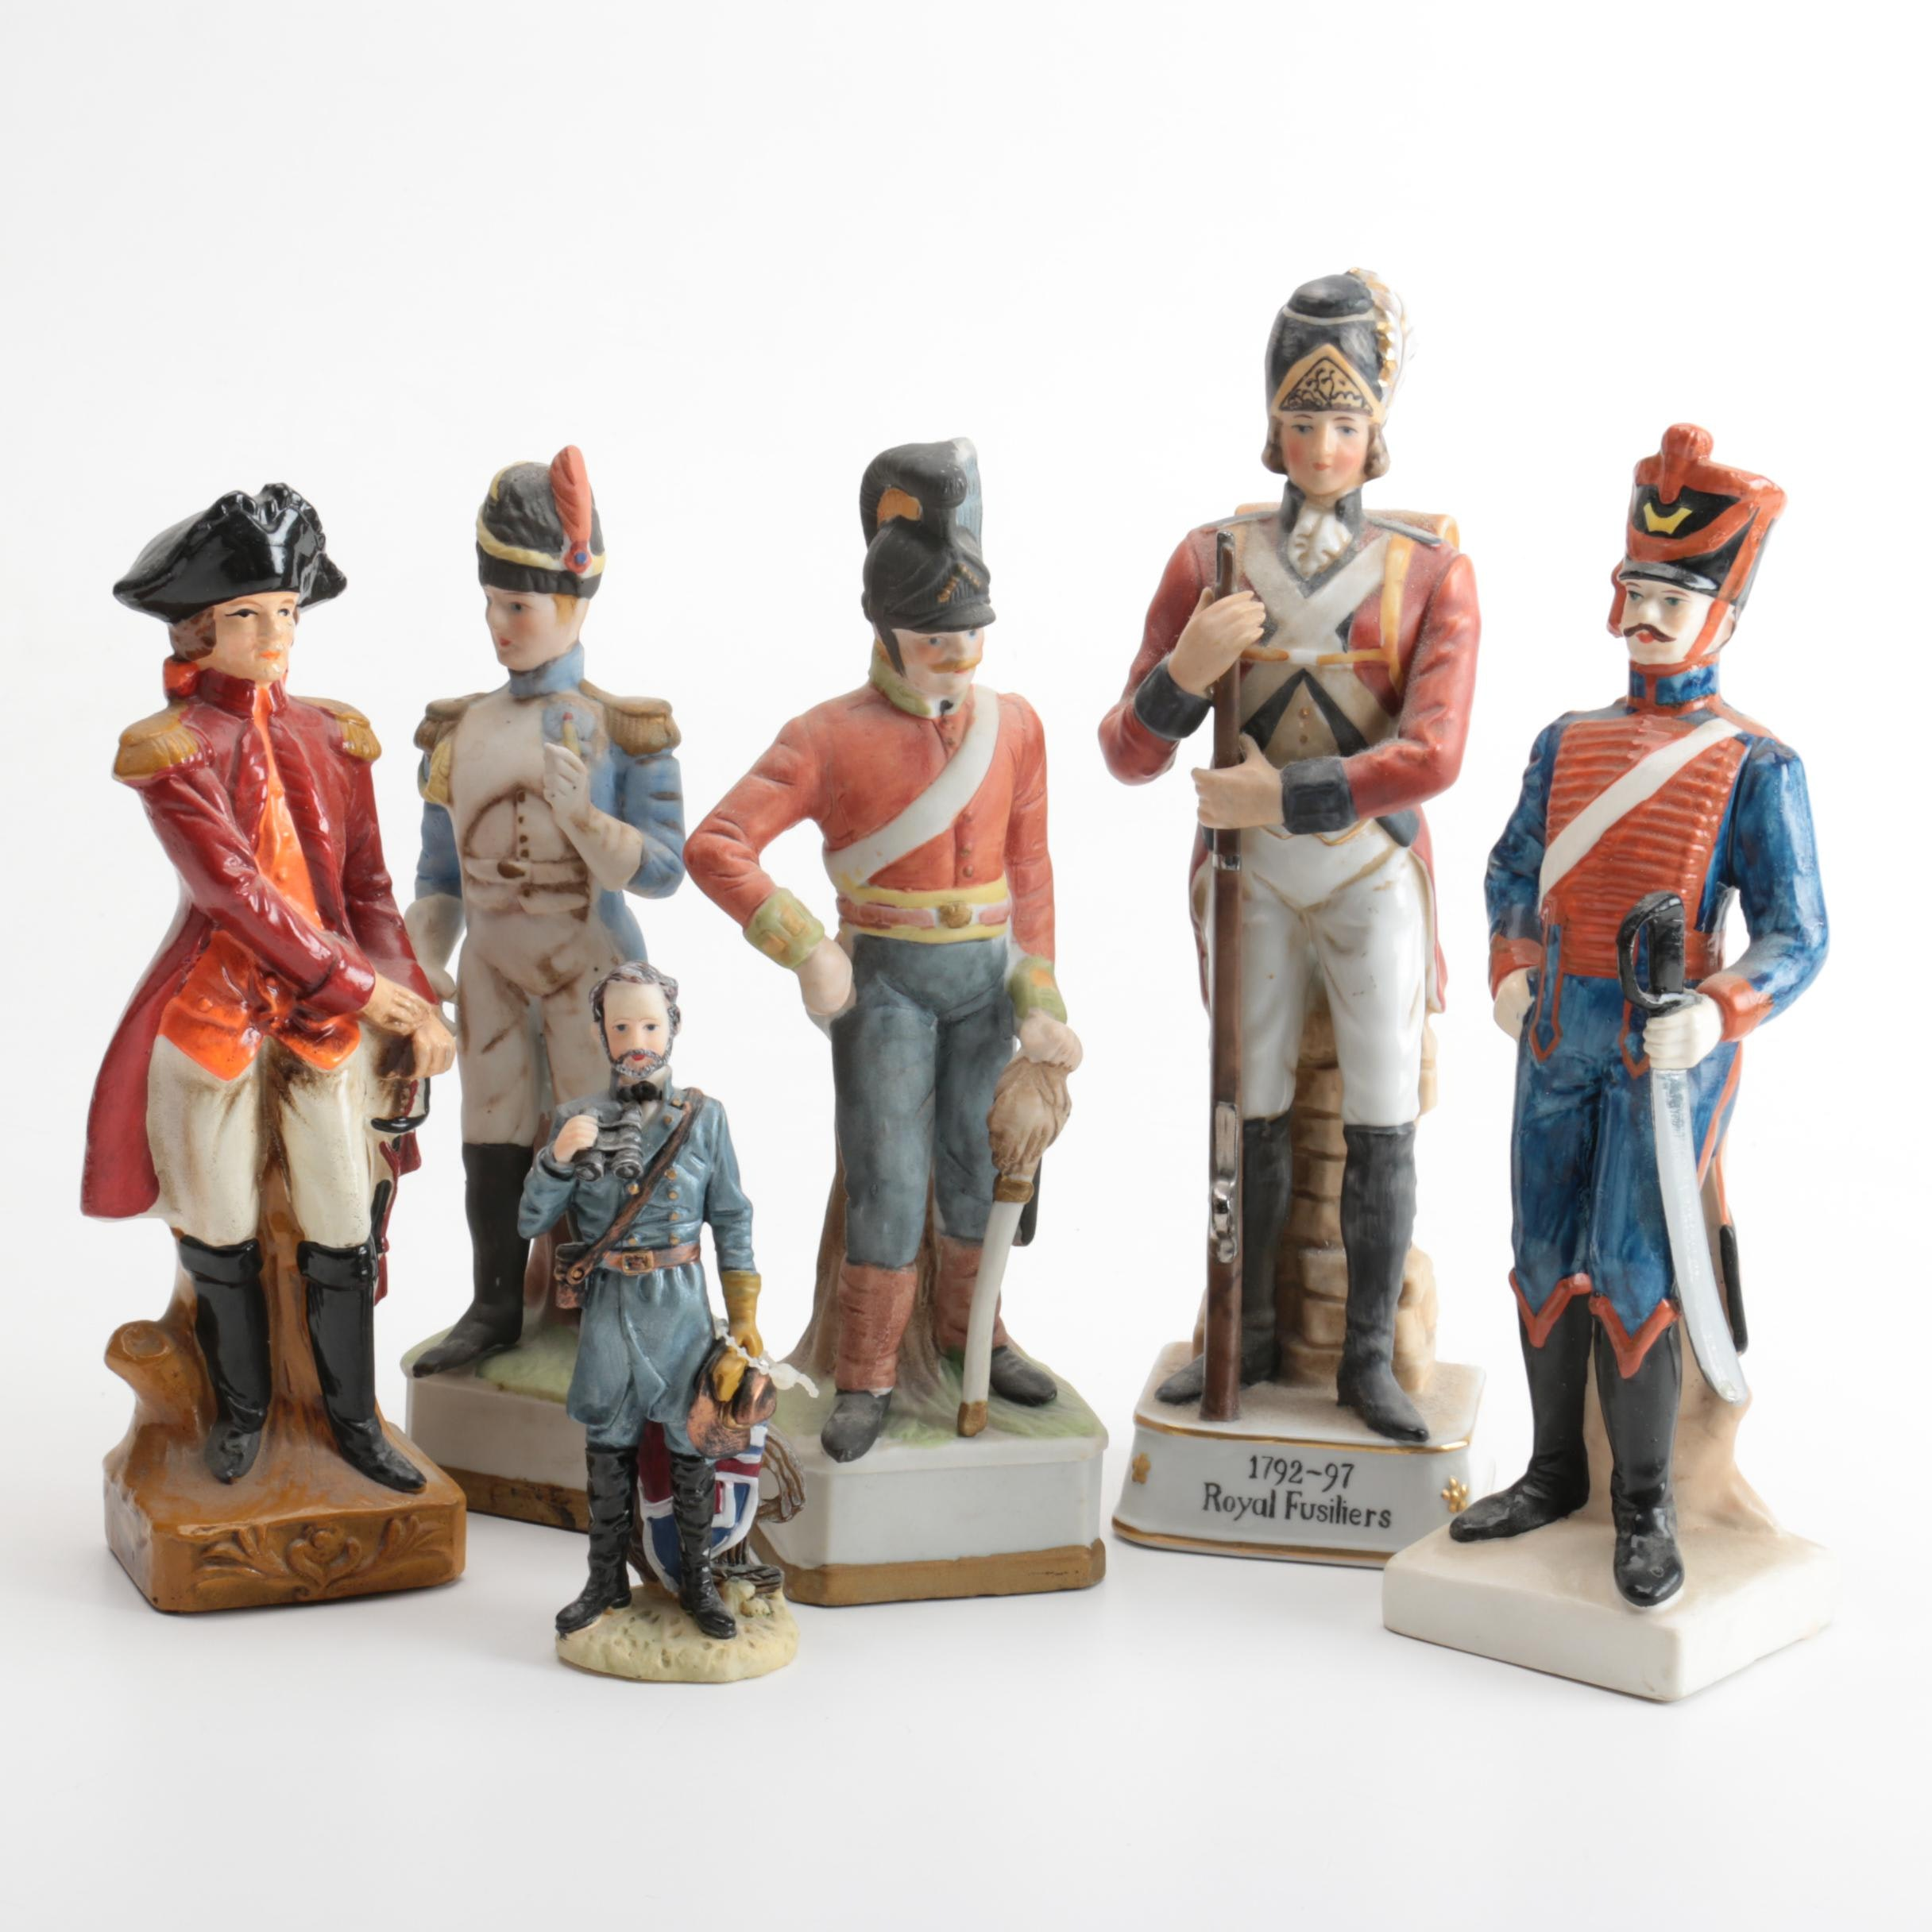 Ceramic Military Figurines of 18th and 19th Century Officers